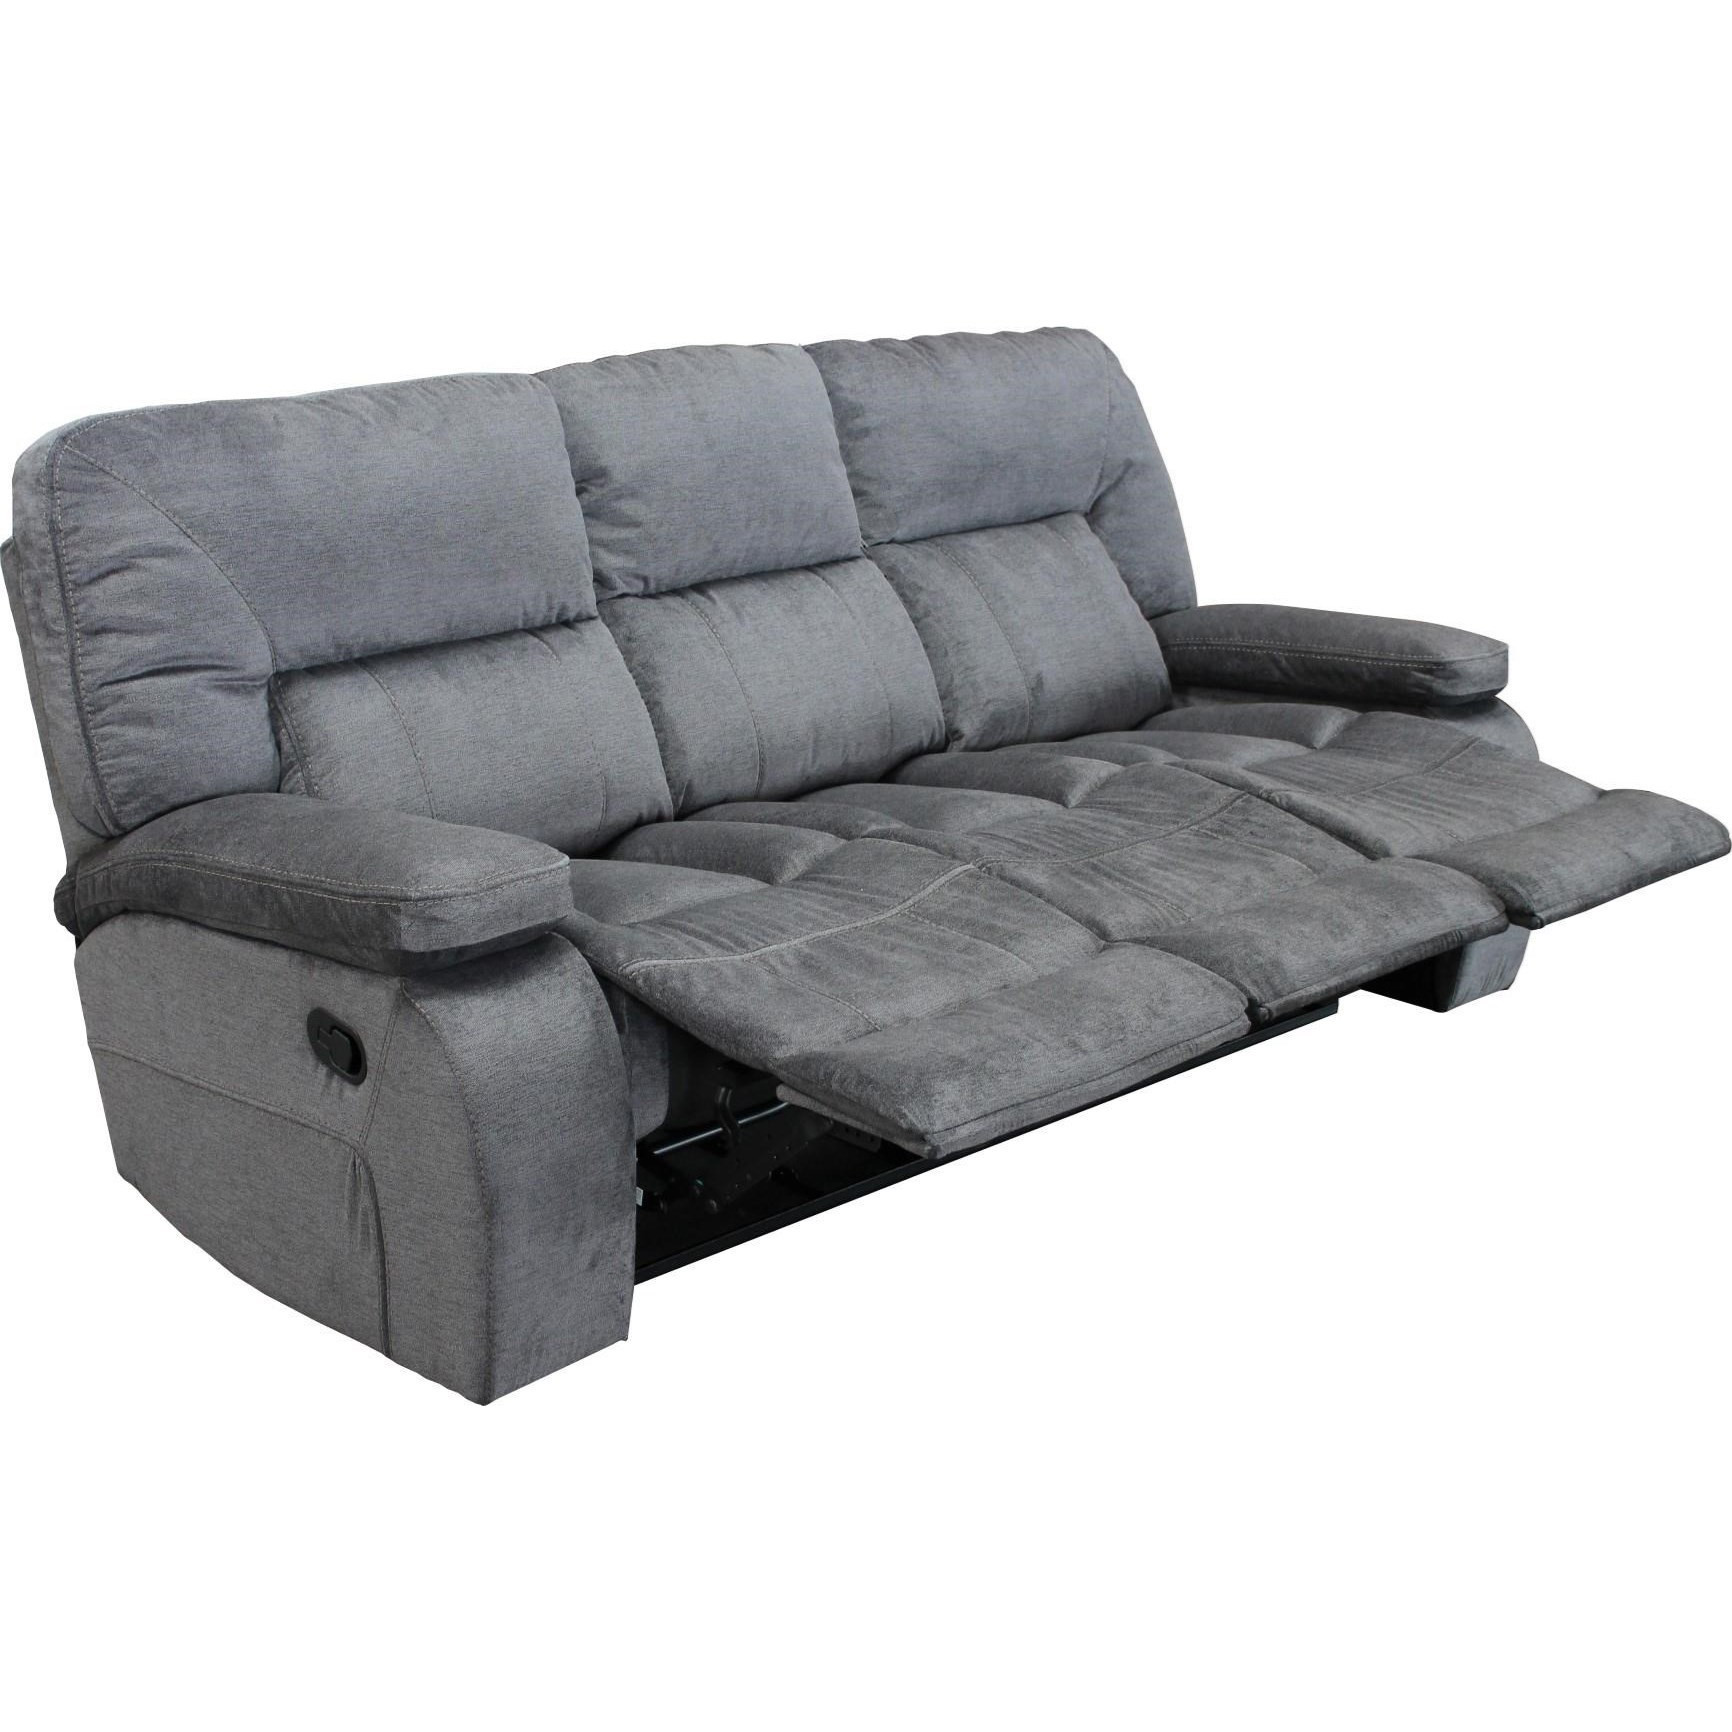 Best ideas about Triple Reclining Sofa . Save or Pin Theo Casual Triple Reclining Sofa with Pillow Arms Now.